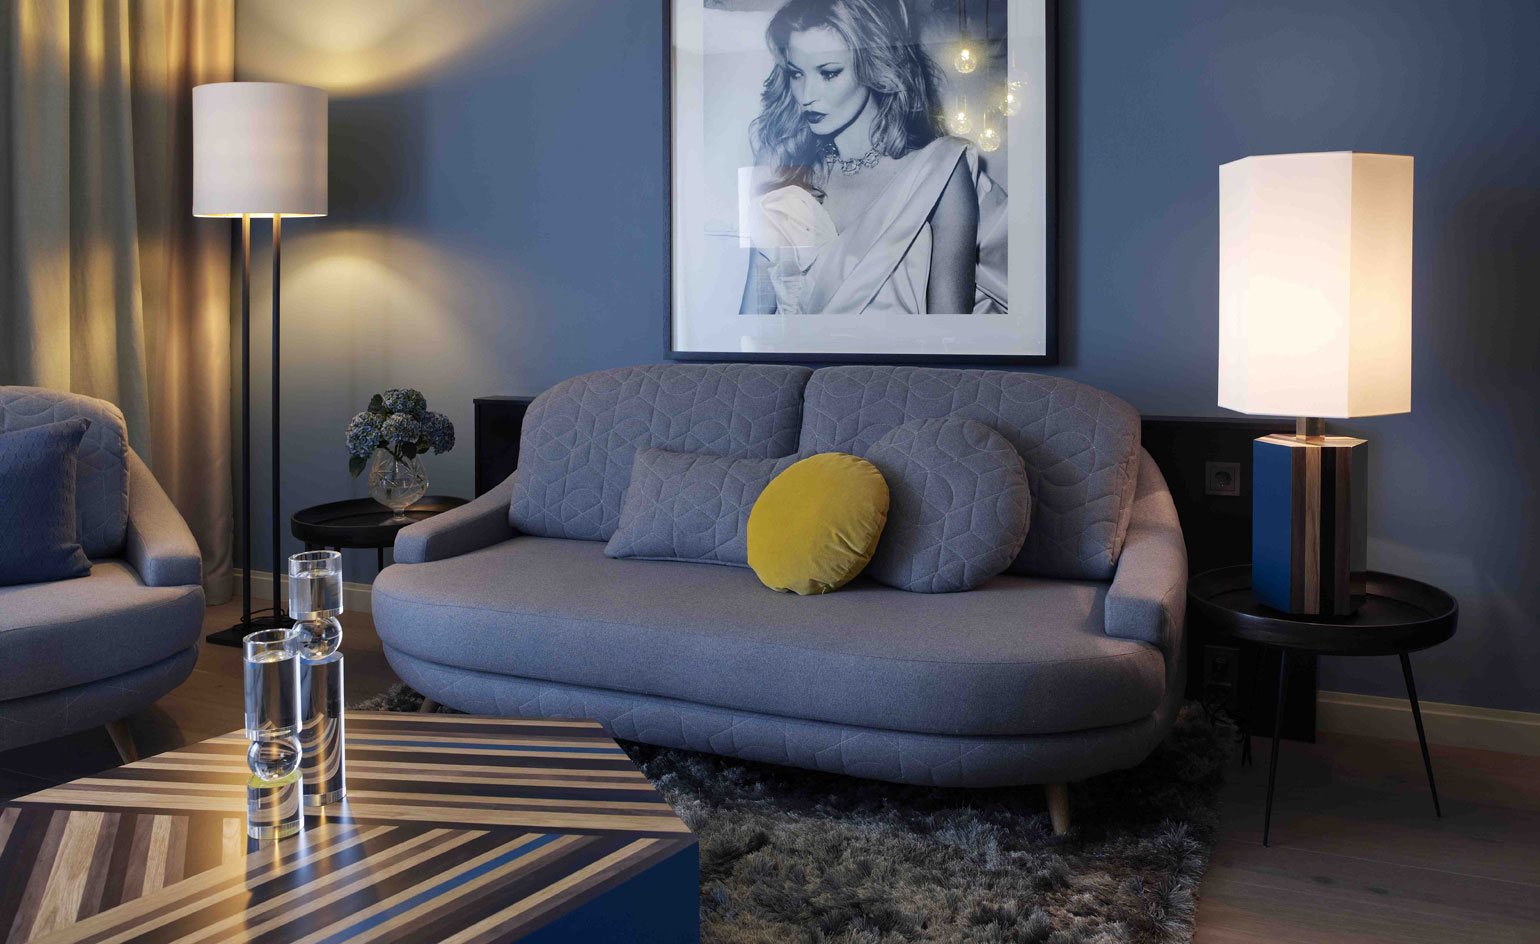 Suites at the thief hotel review oslo norway wallpaper for Design hotel oslo